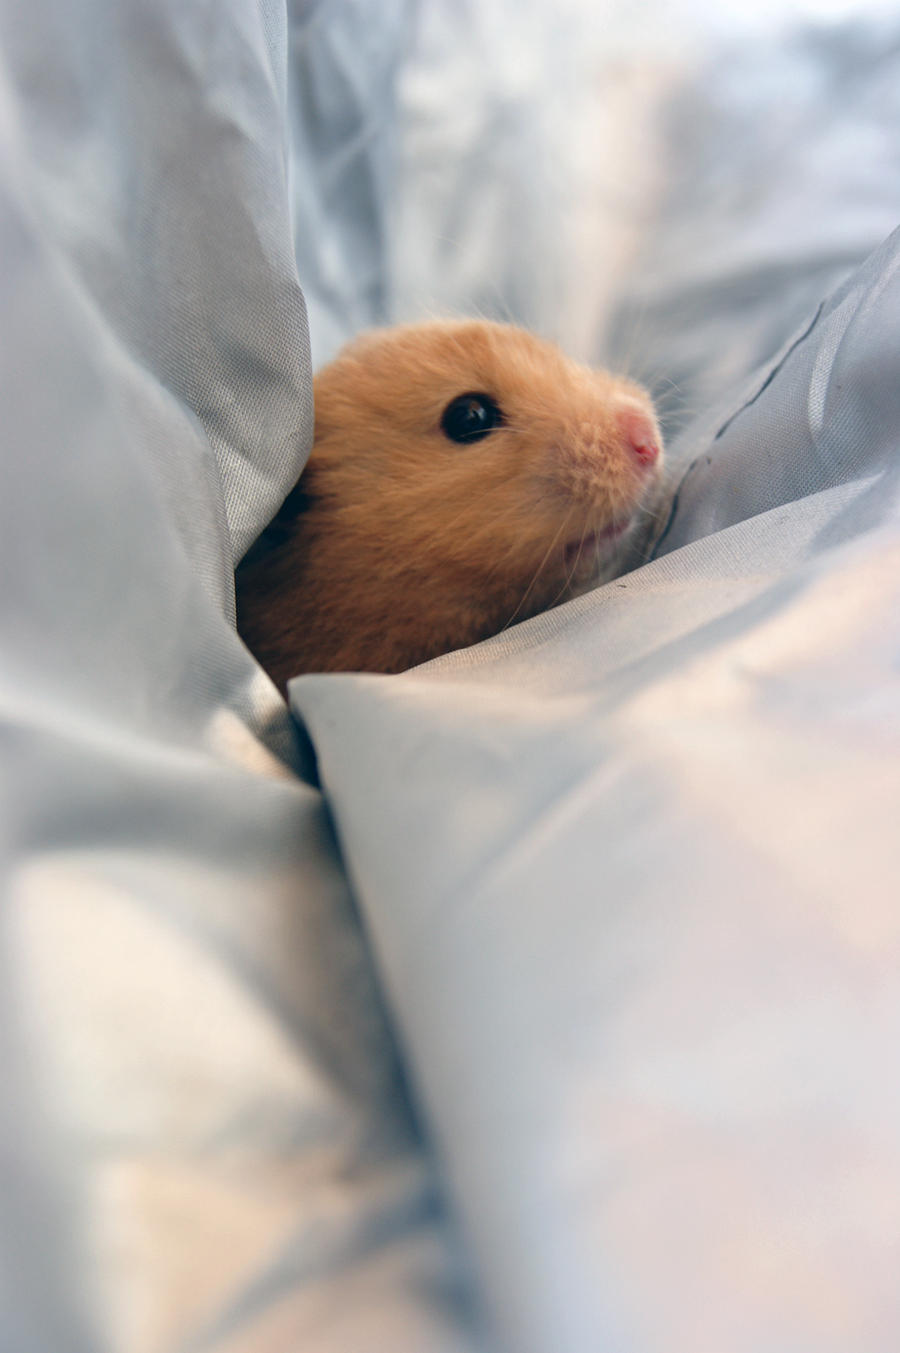 mousey the hamster